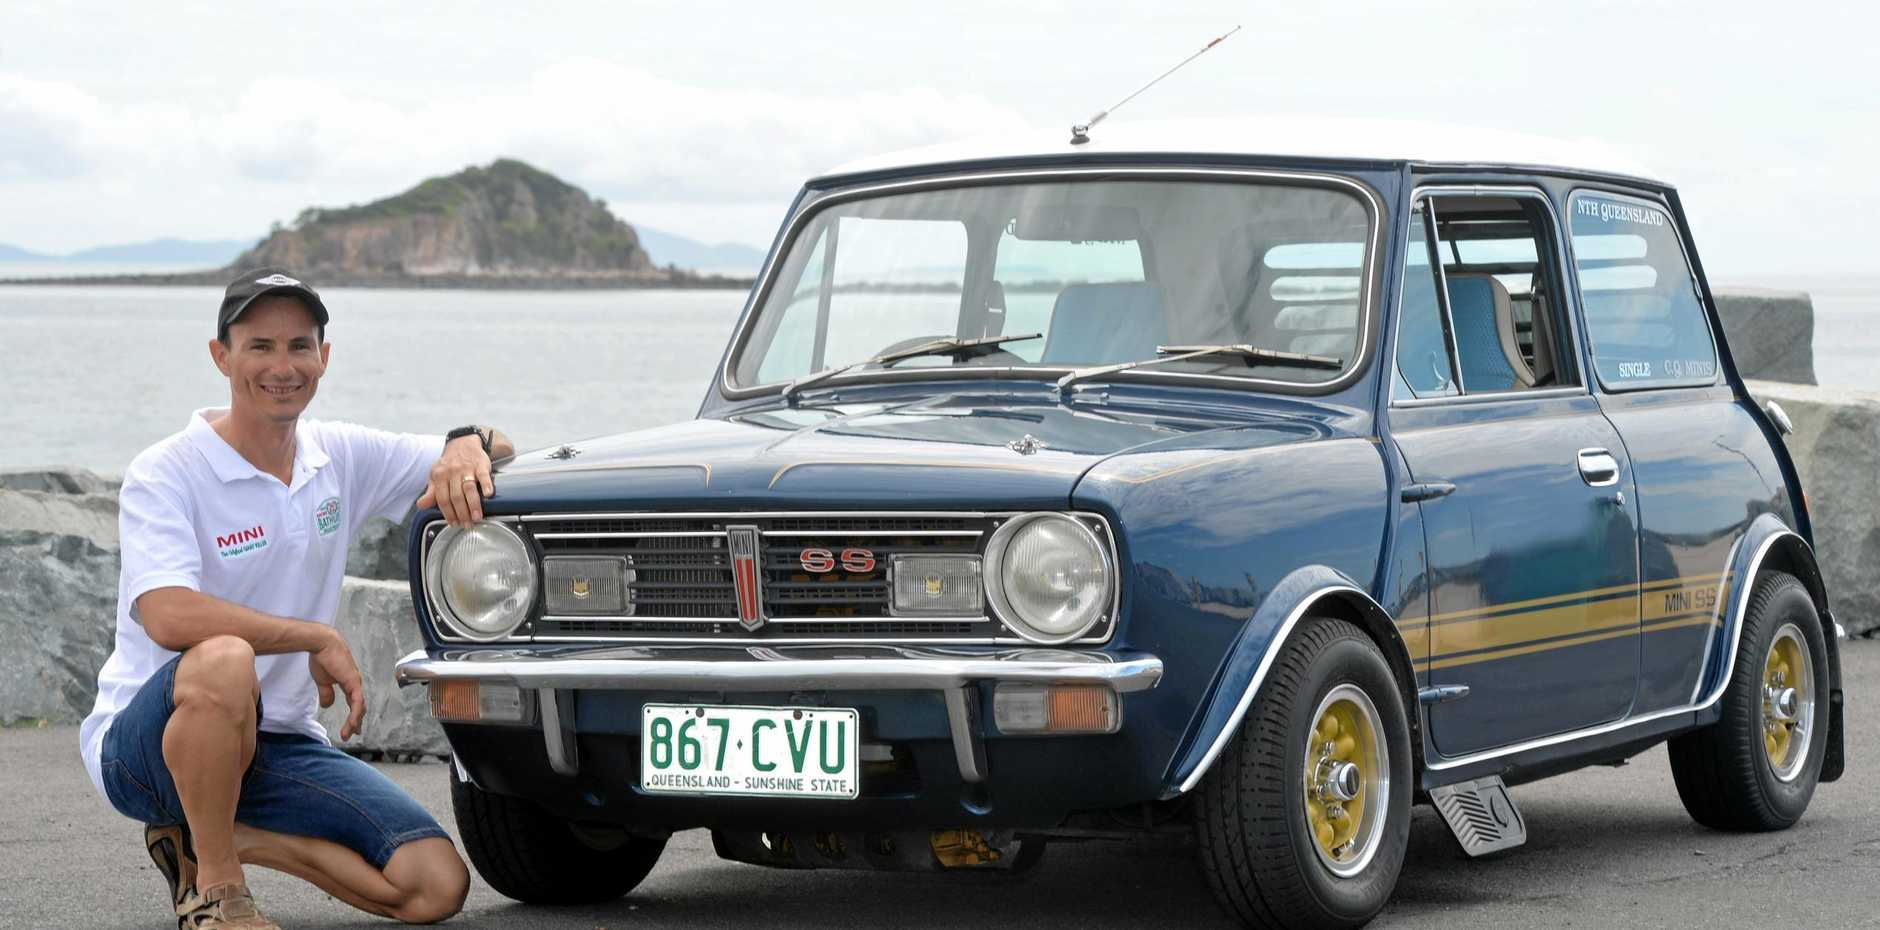 Engines revving for cancer research | Sunshine Coast Daily